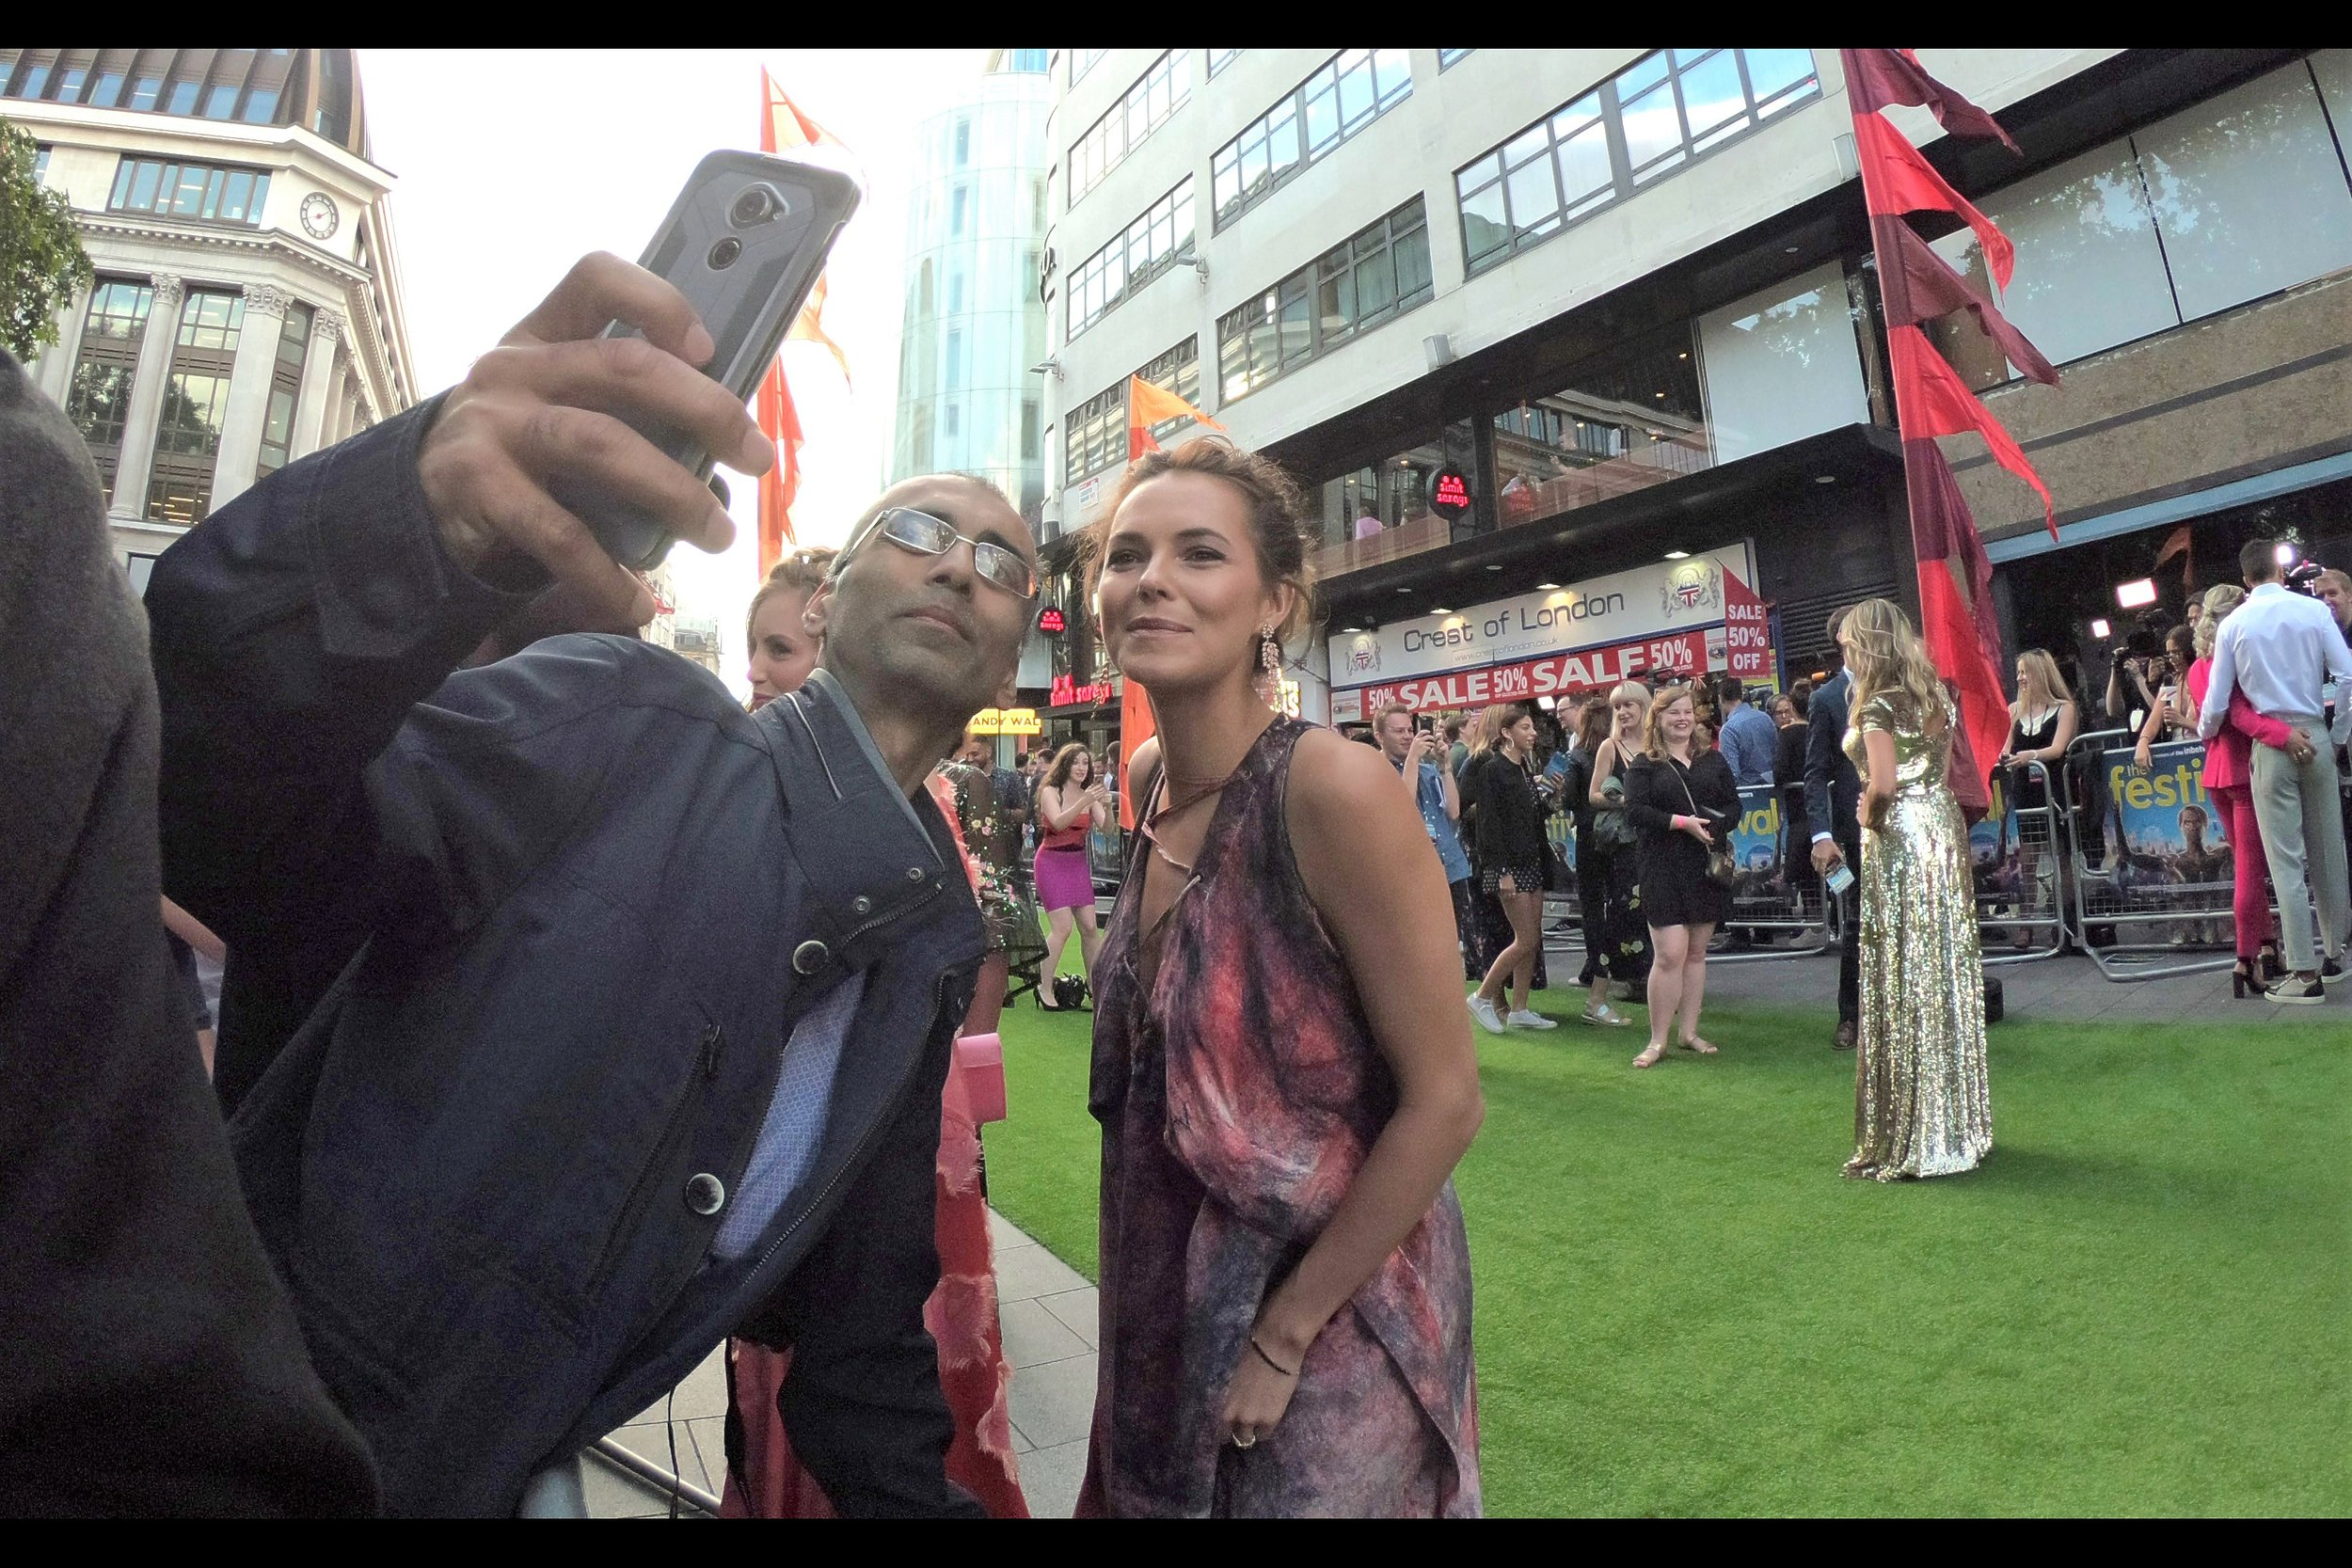 """I told the guy with the intense look to beat it... he was scaring me"".  Kara Tointon poses with one of the most charismatic people I've ever met where wrangling celebrities is concerned."